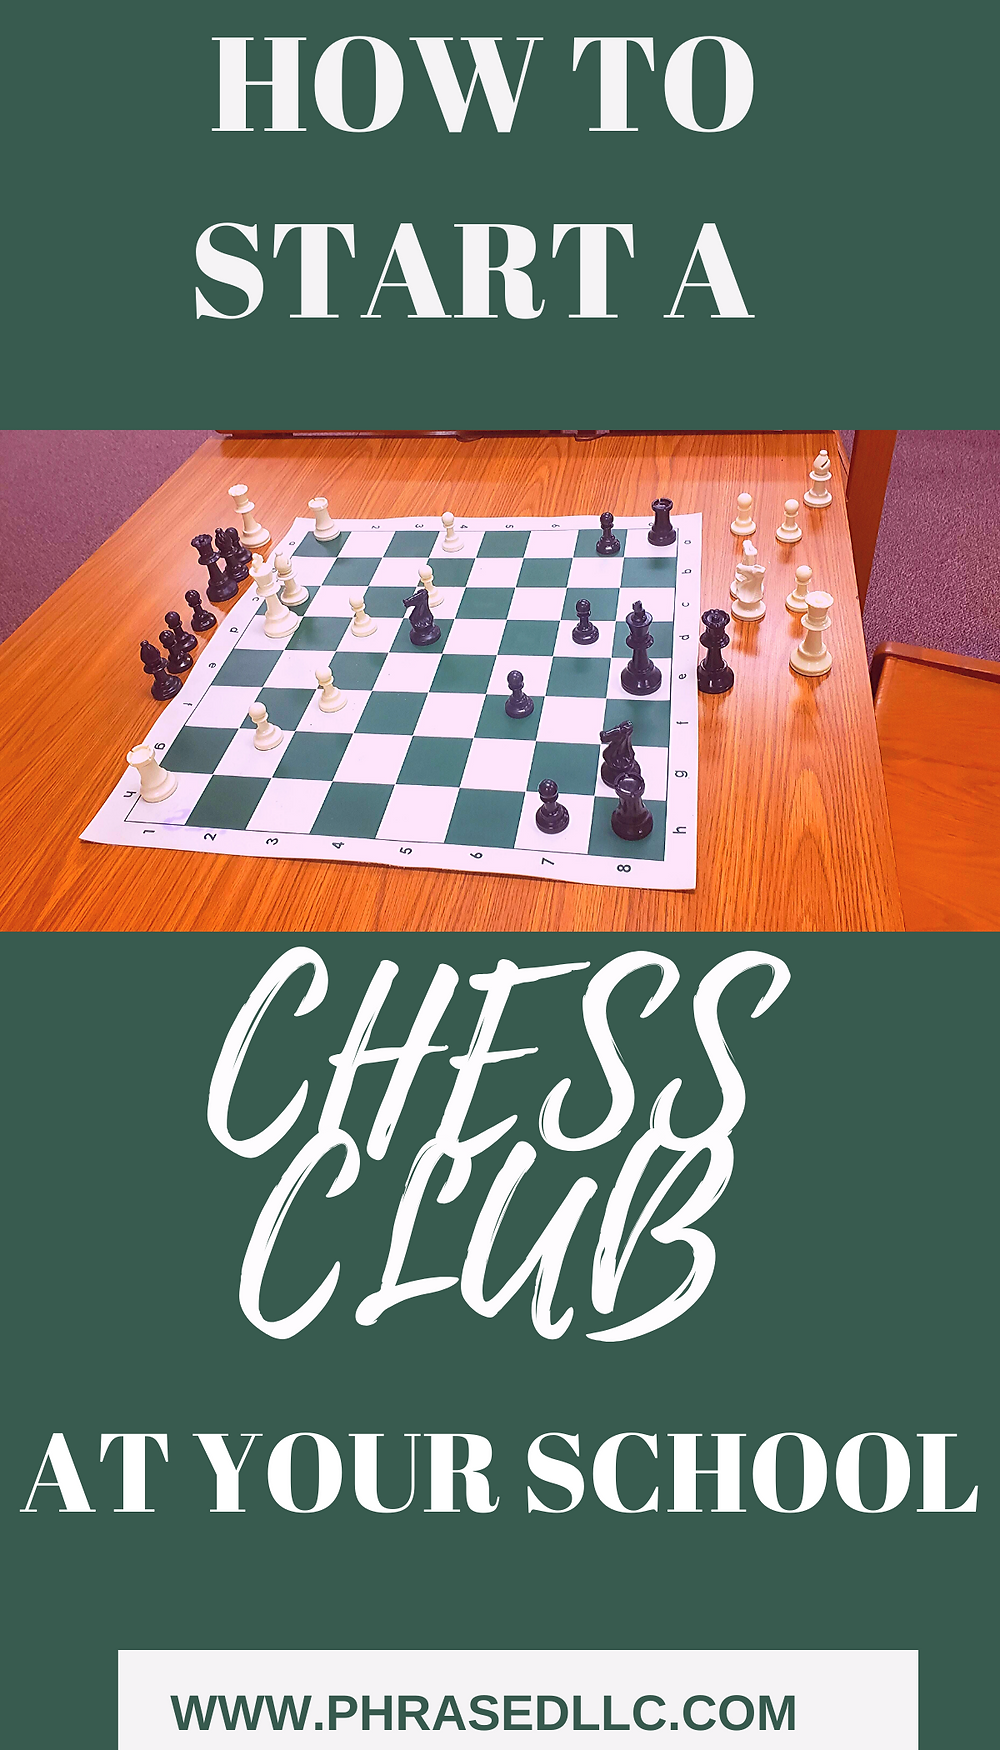 Learn how to start and run a chess club at your school that meets STEM and STEAM initiatives (chess board with a green and tan colored background and writing)